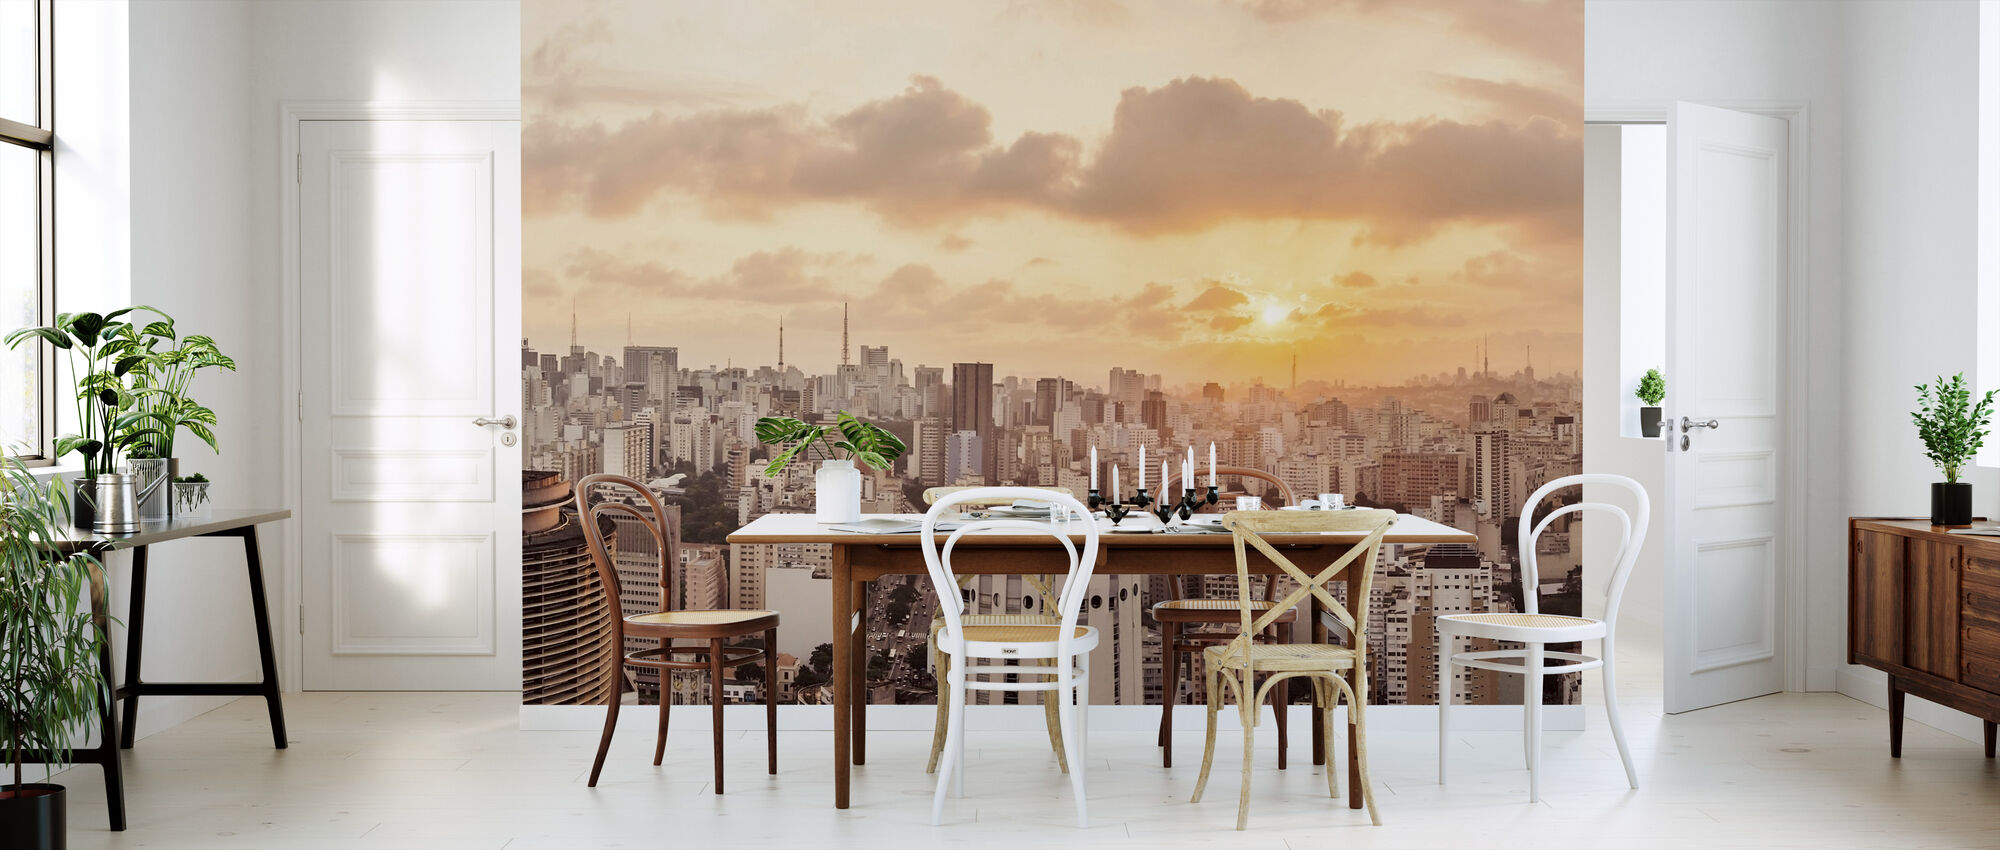 Sao Paulo Sunset - Wallpaper - Kitchen